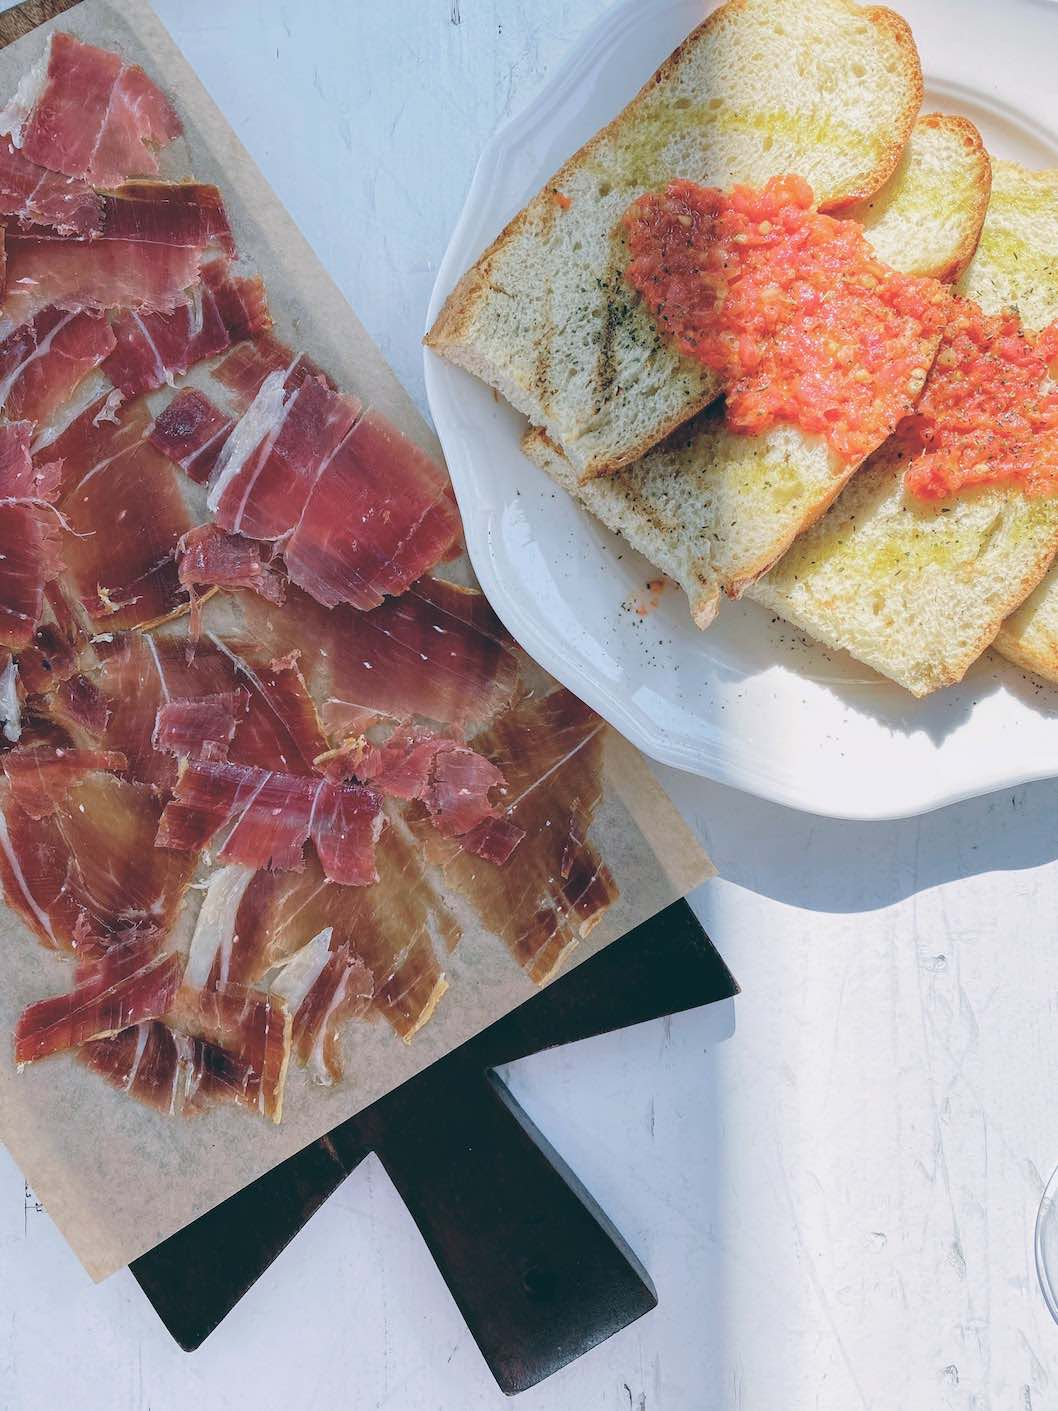 Hams & Clams, Athens - Travel Food People